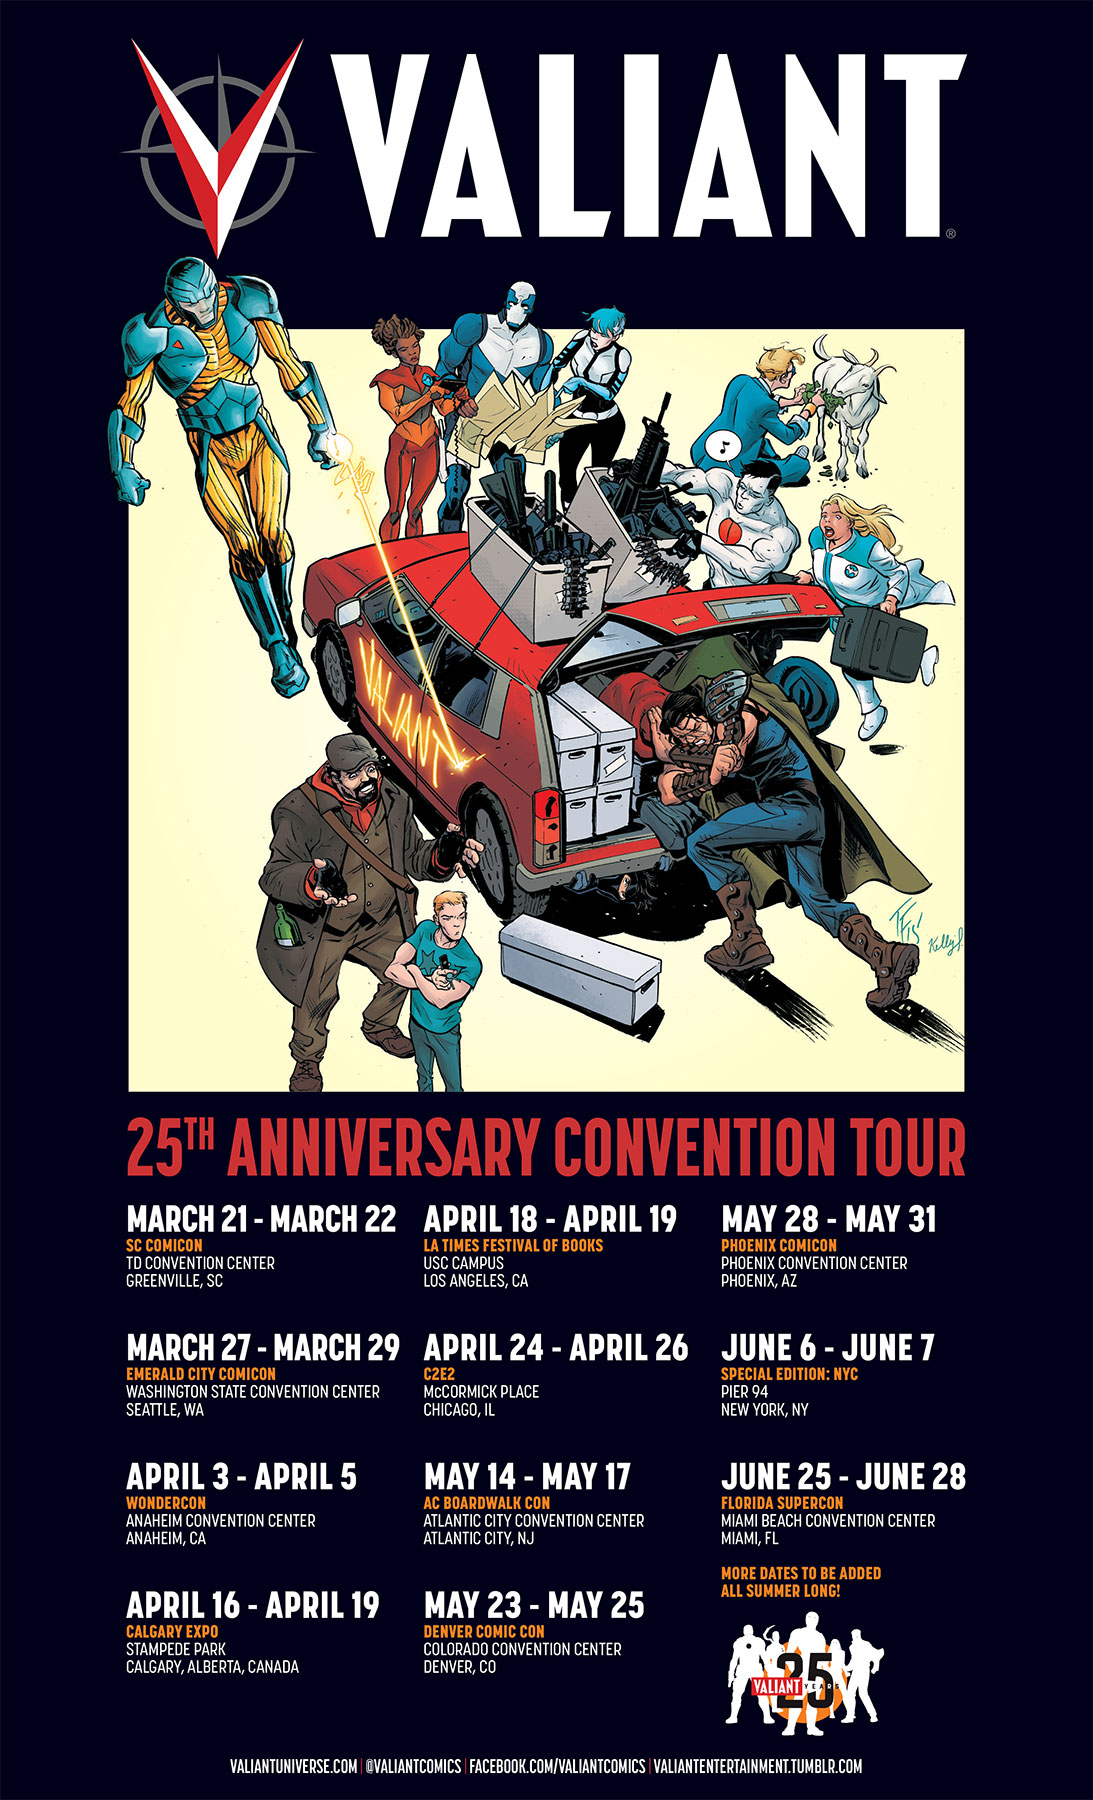 VALIANT 25th ANNIVERSARY CONVENTION TOUR POSTER – Artwork by Tom Fowler